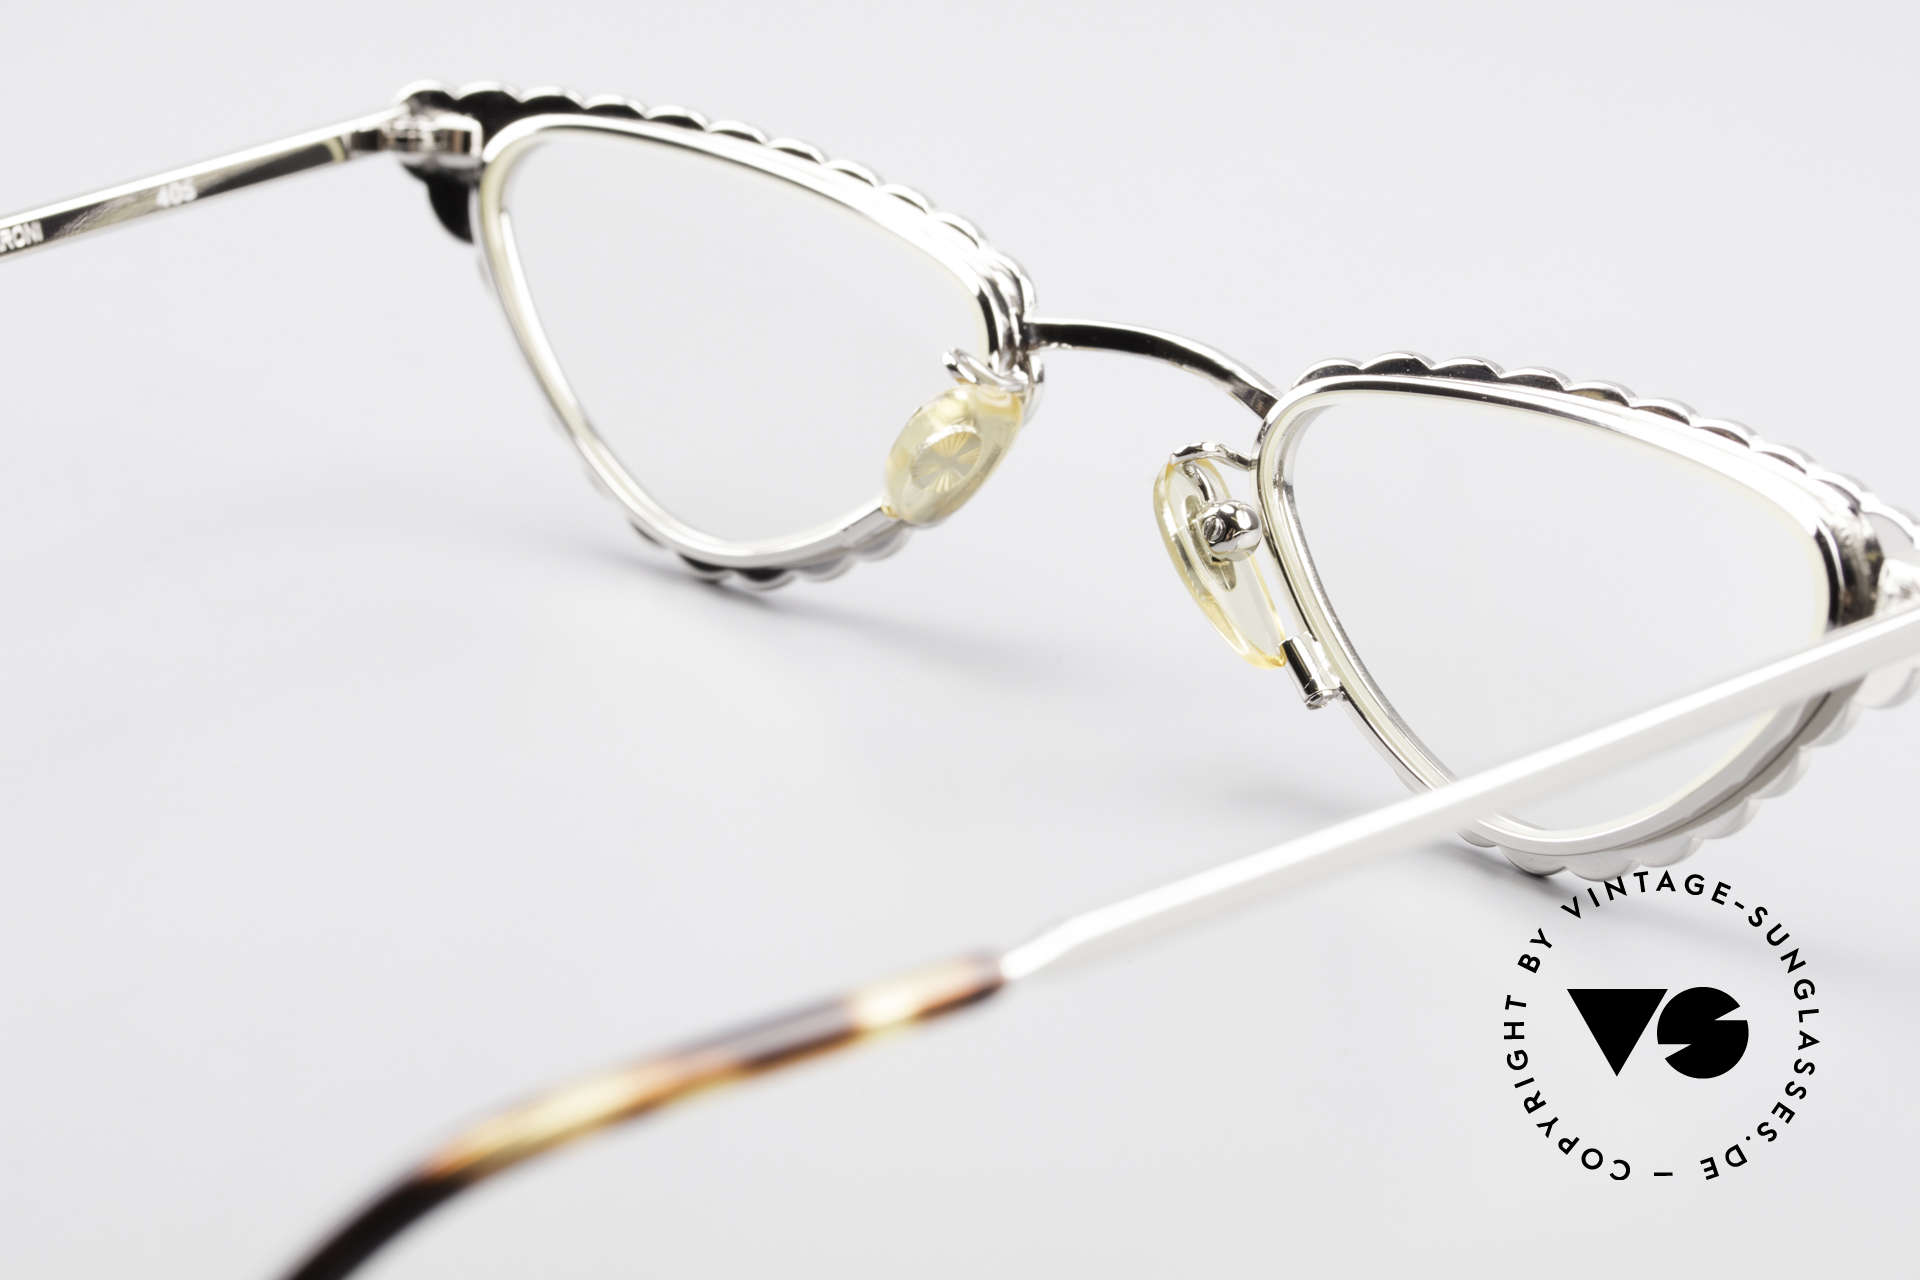 L.A. Eyeworks Macaroni 405 Reading Glasses Like A Leaf, Size: small, Made for Women